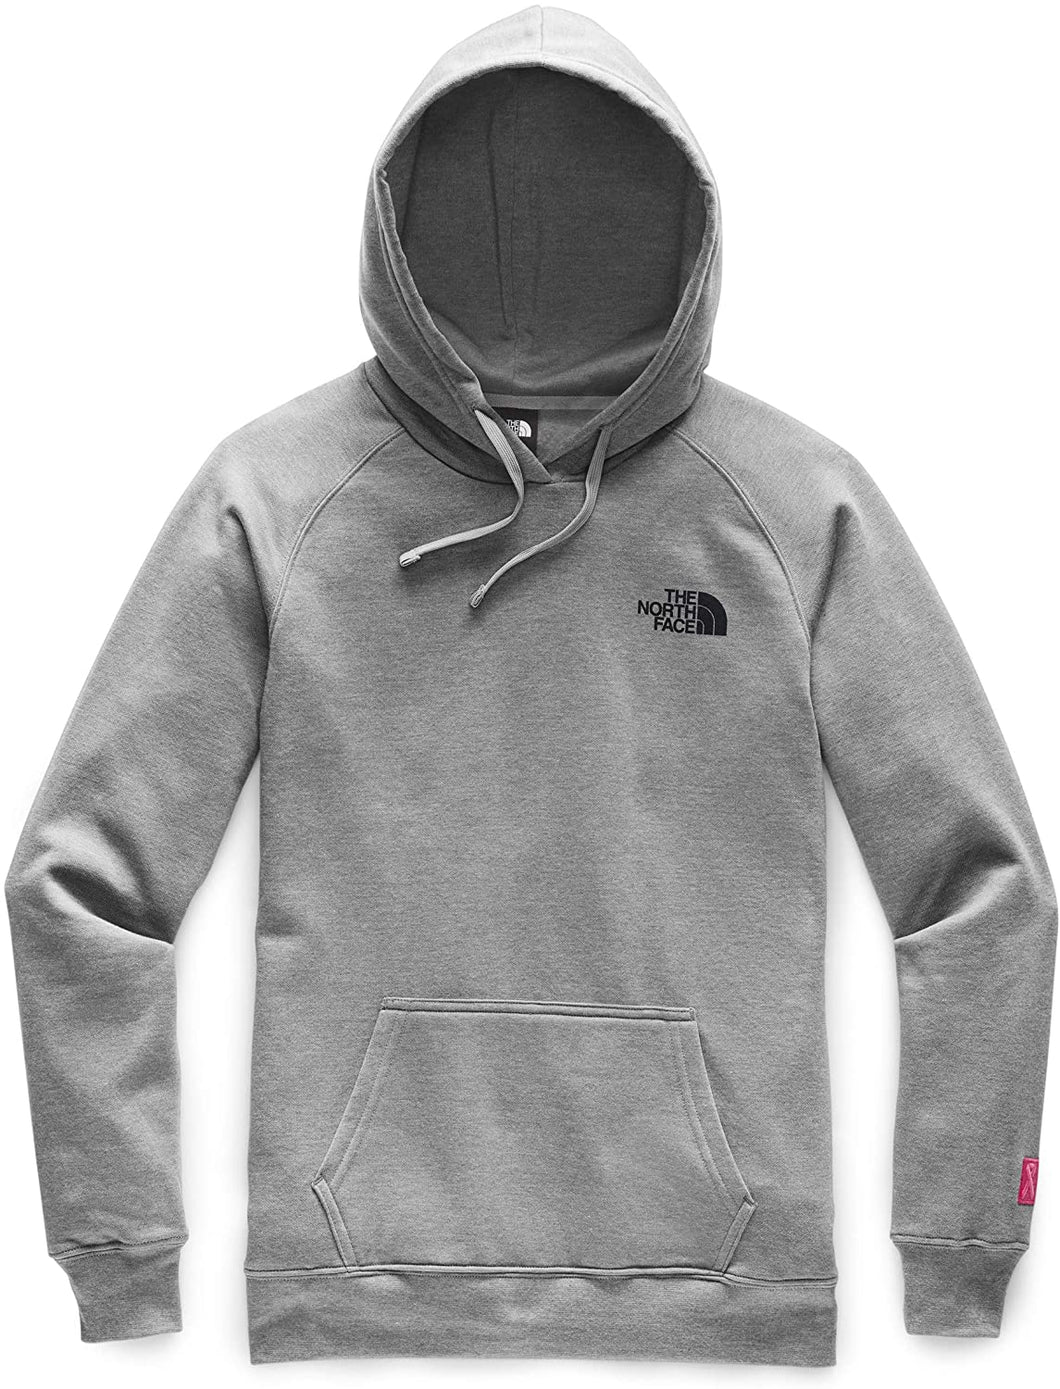 Women's The North Face Pink Ribbon Pull Over Hoodie in TNF MEDIUM GREY HEATHER from the front